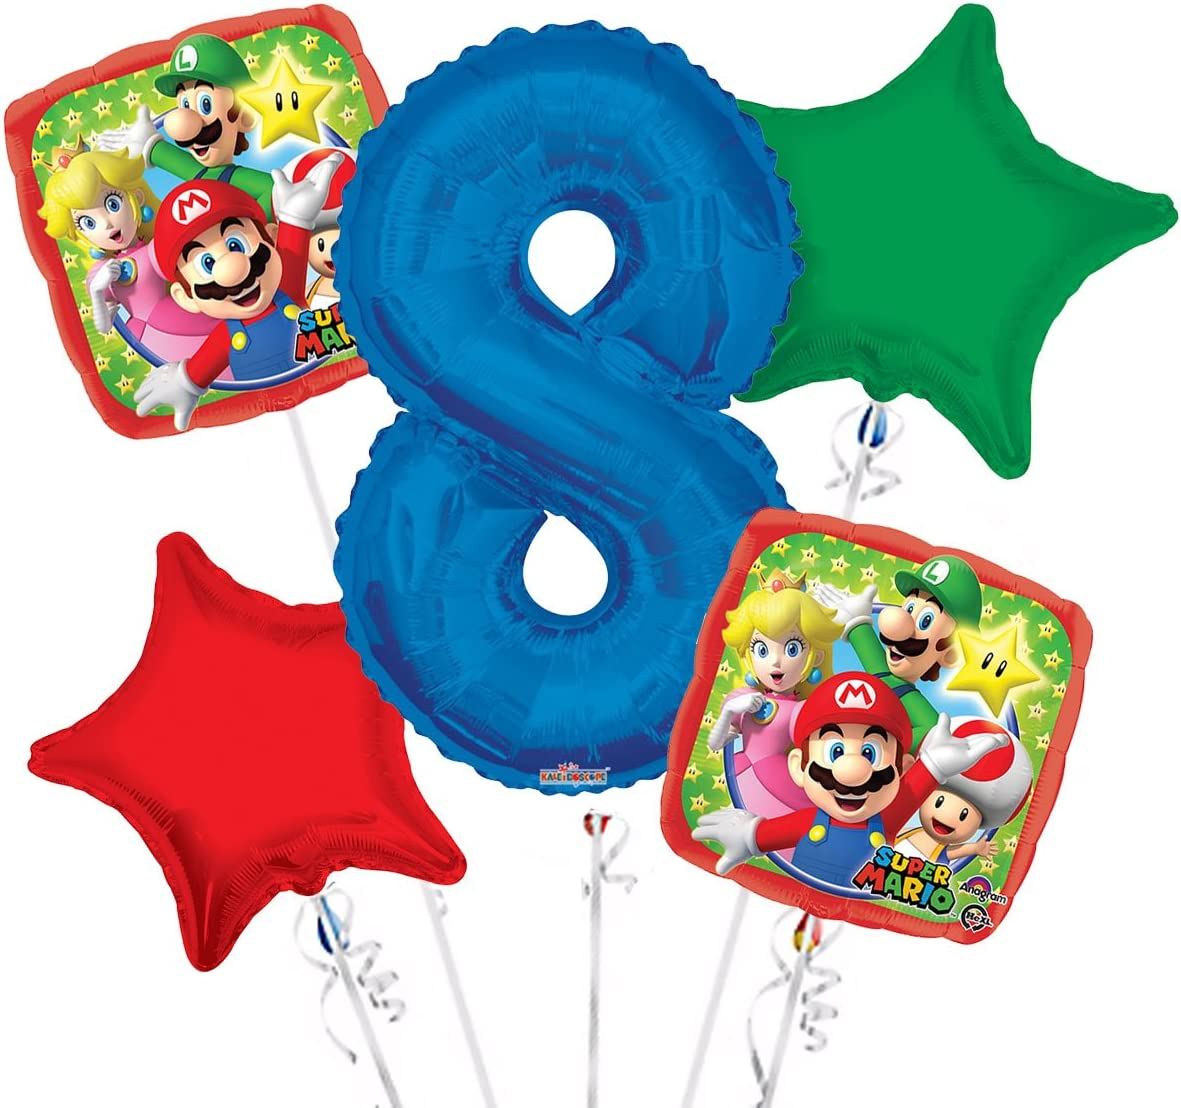 Party Supplies Super Mario Balloon Bouquet 8th Birthday 5 pcs